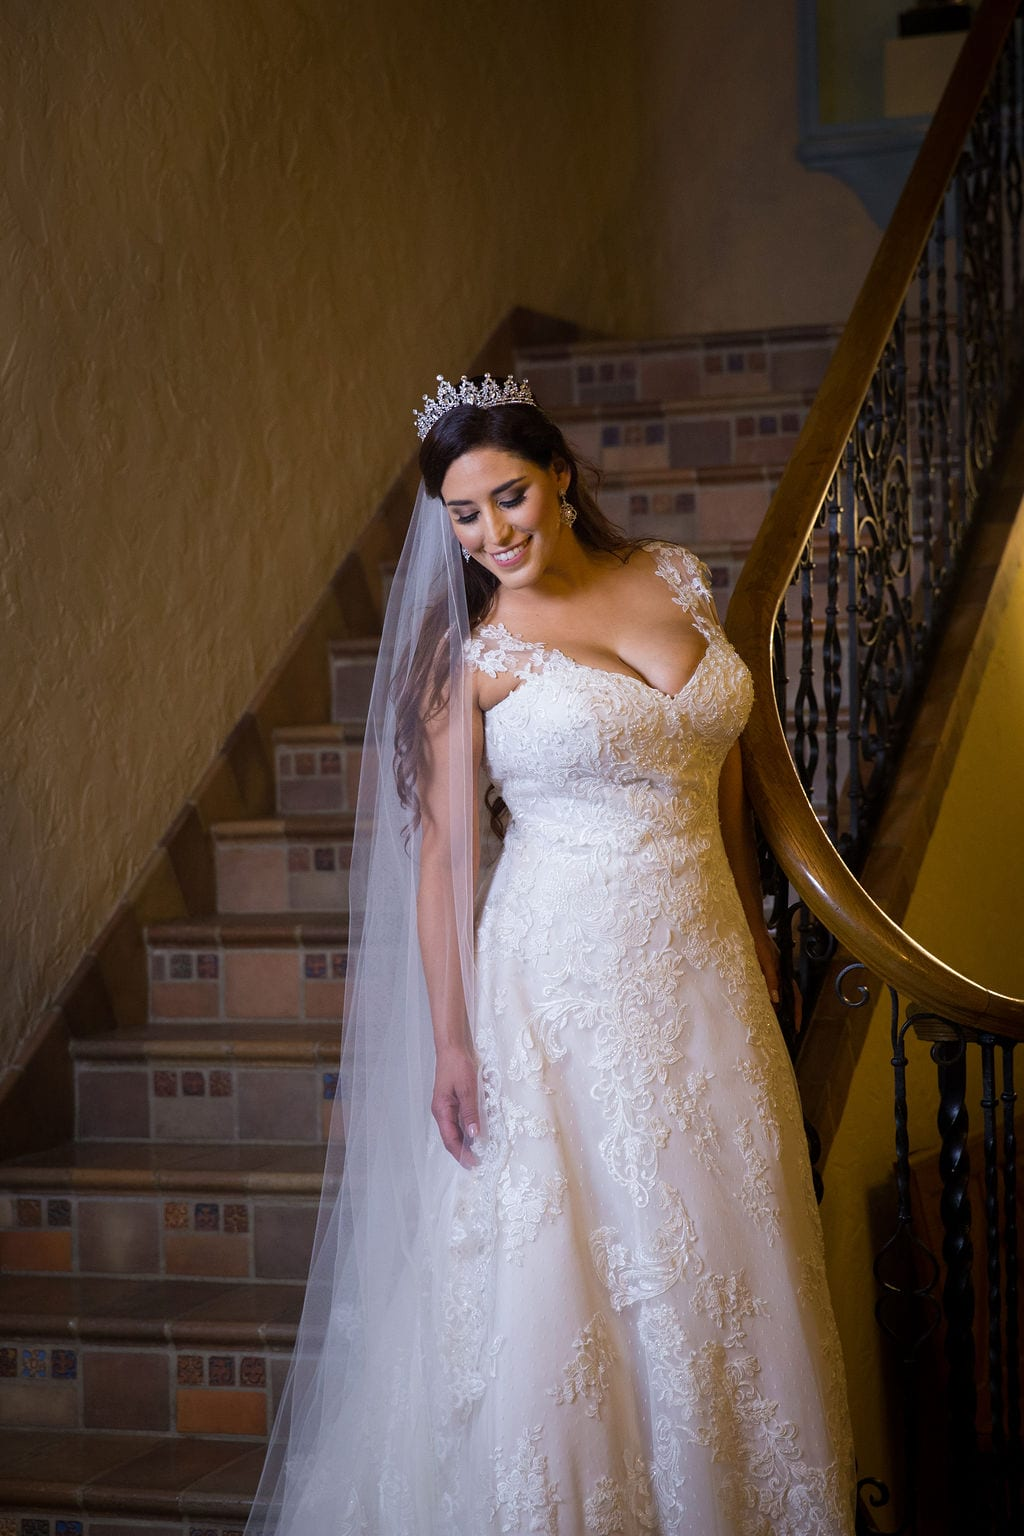 Mary Elizabeth's bridal at the McNay headshot inside stair looking down